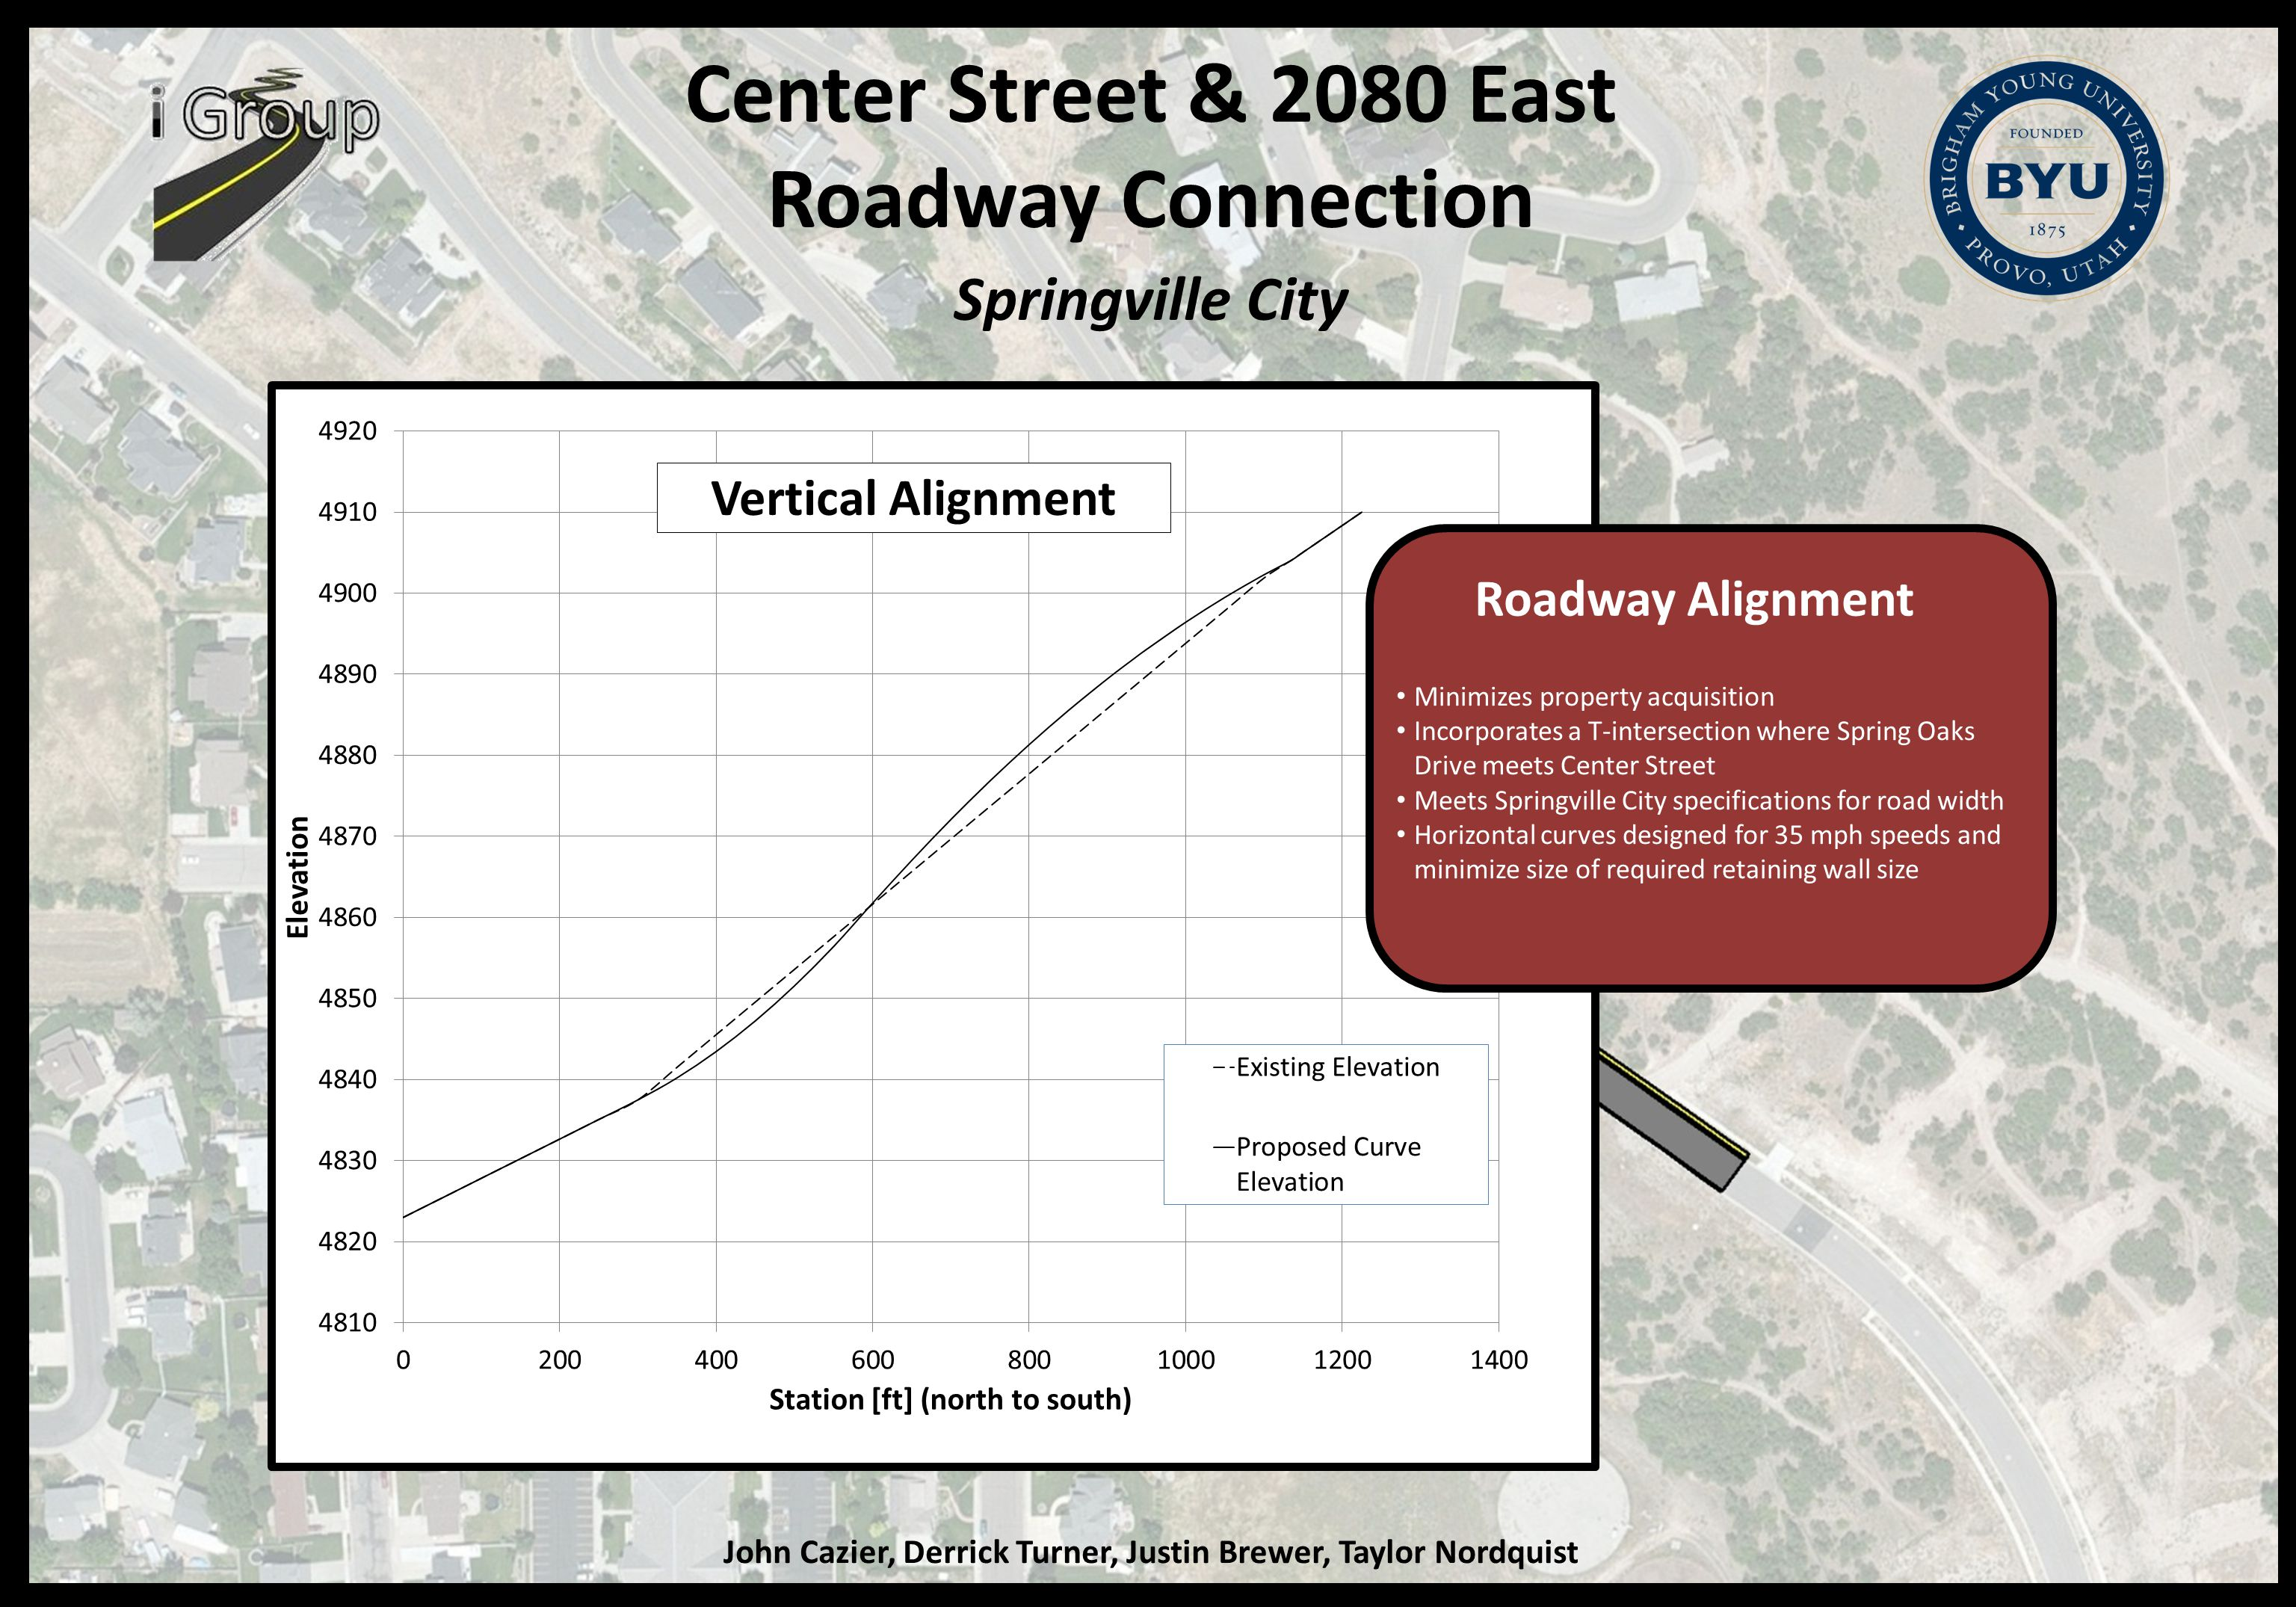 Center Street & 2080 East Roadway Connection Springville City John Cazier, Derrick Turner, Justin Brewer, Taylor Nordquist Roadway Alignment Minimizes property acquisition Incorporates a T-intersection where Spring Oaks Drive meets Center Street Meets Springville City specifications for road width Horizontal curves designed for 35 mph speeds and minimize size of required retaining wall size Vertical Alignment